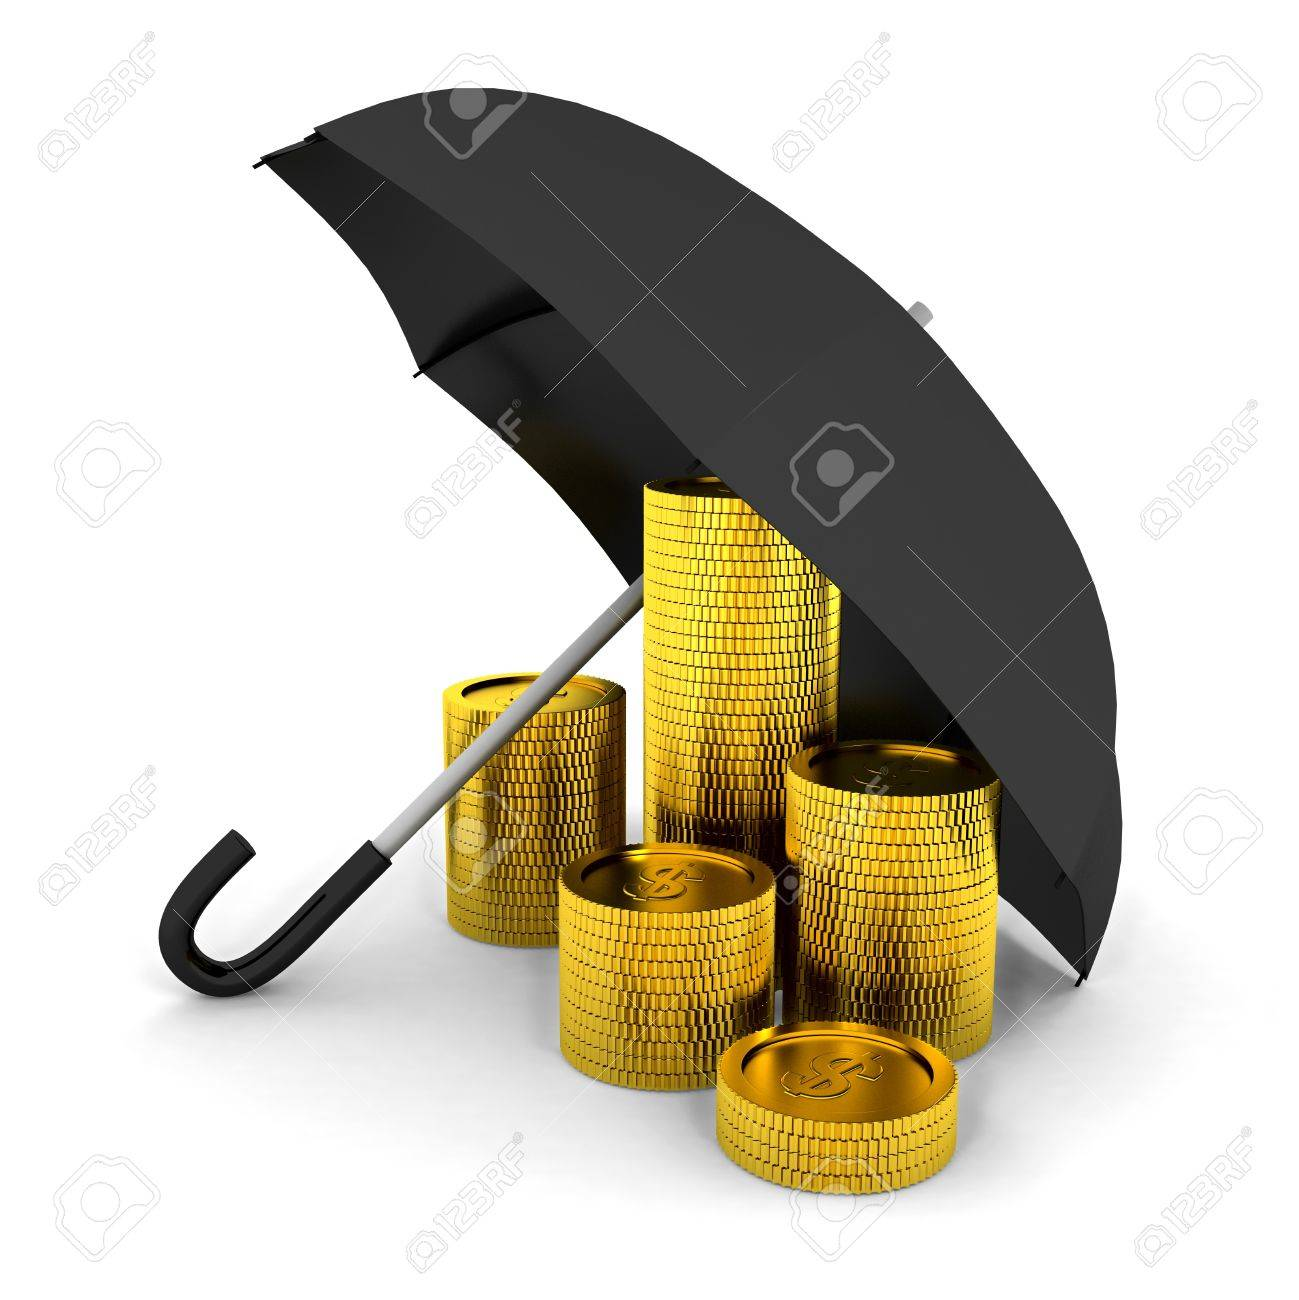 Pile of coins under a umbrella. 3d render Stock Photo - 7116420